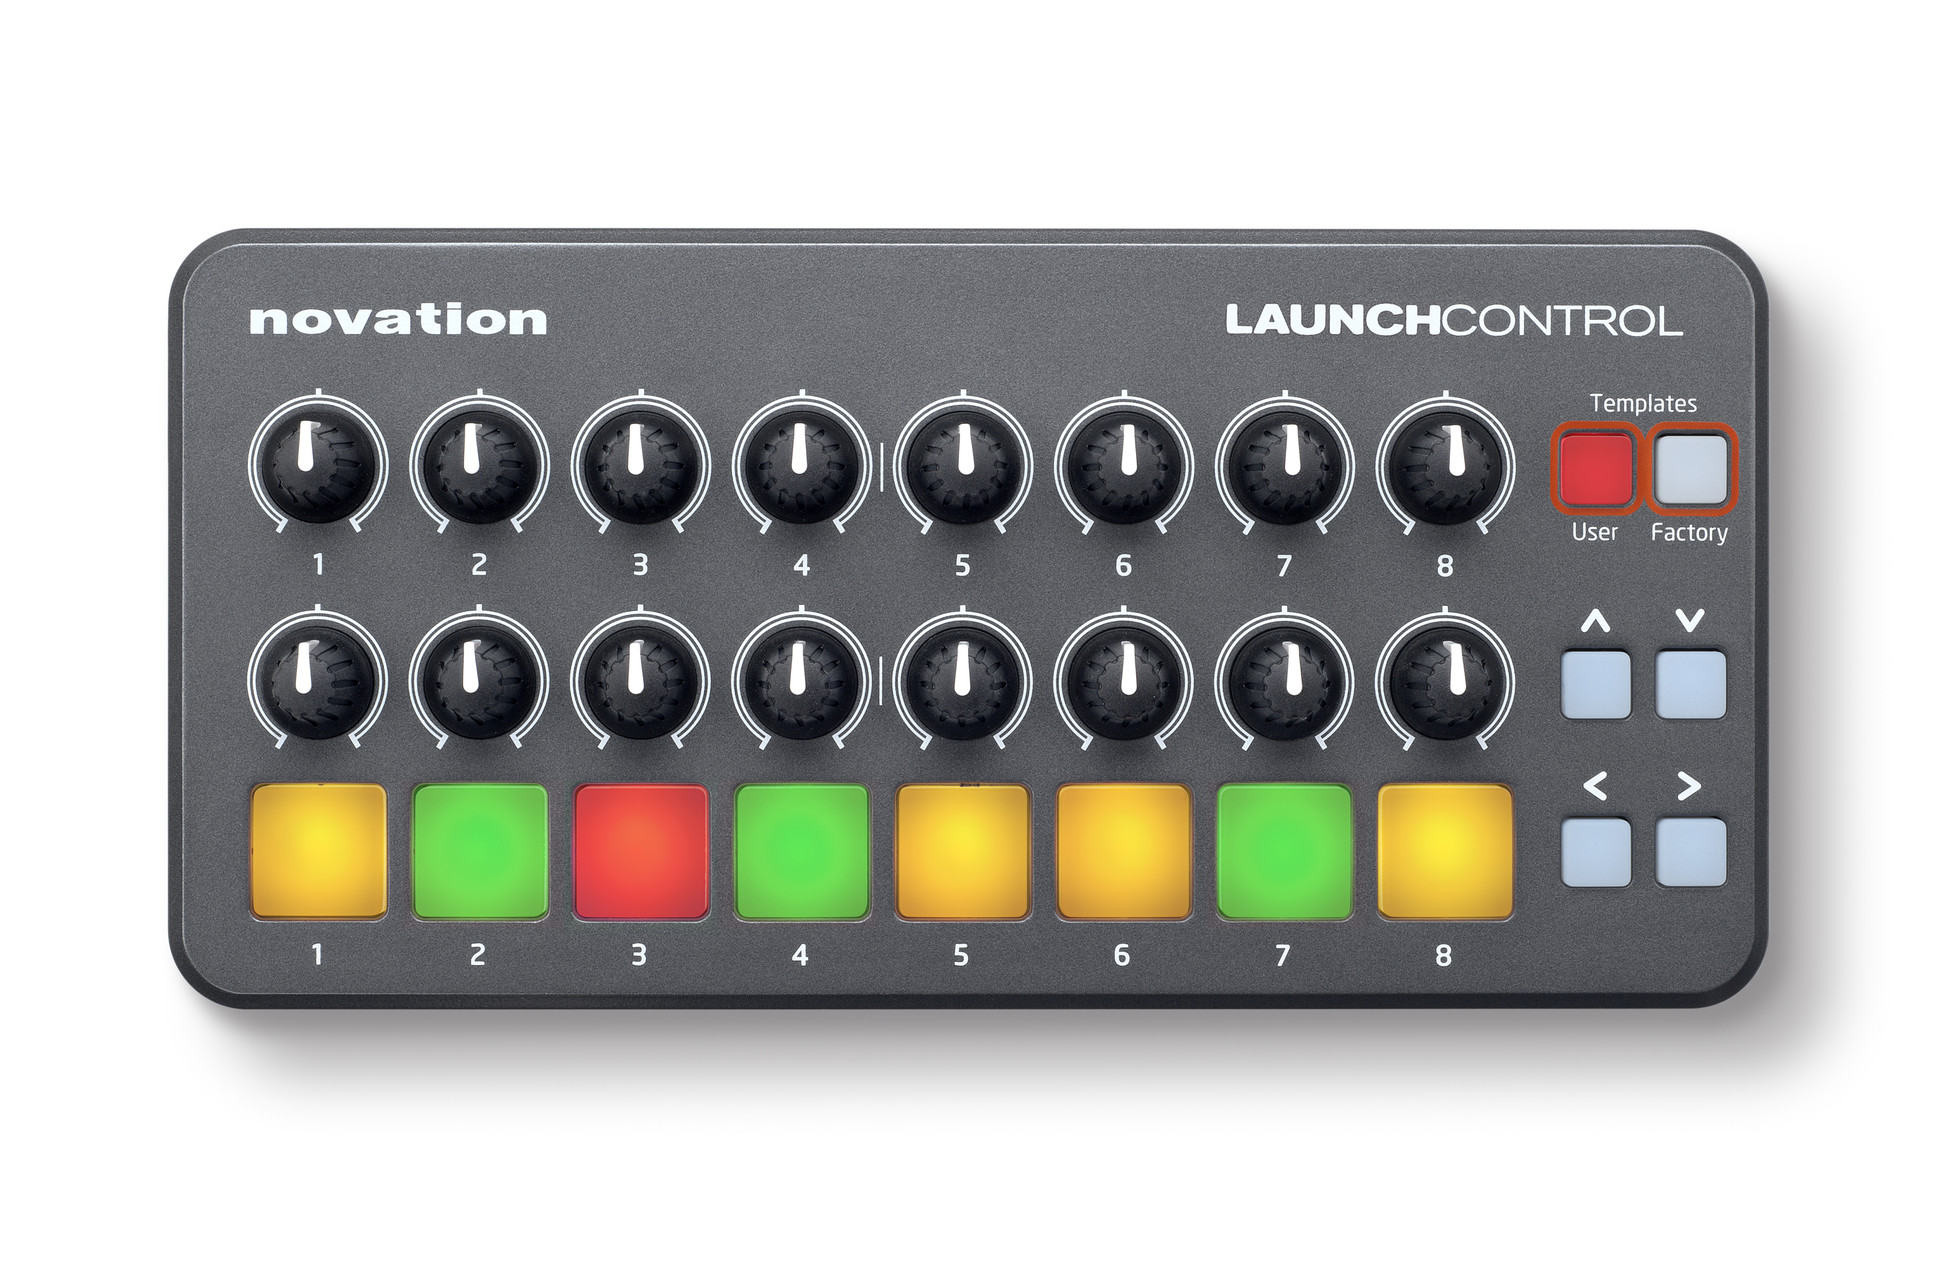 Novation LaunchControl USB Midi Control Surface by Novation